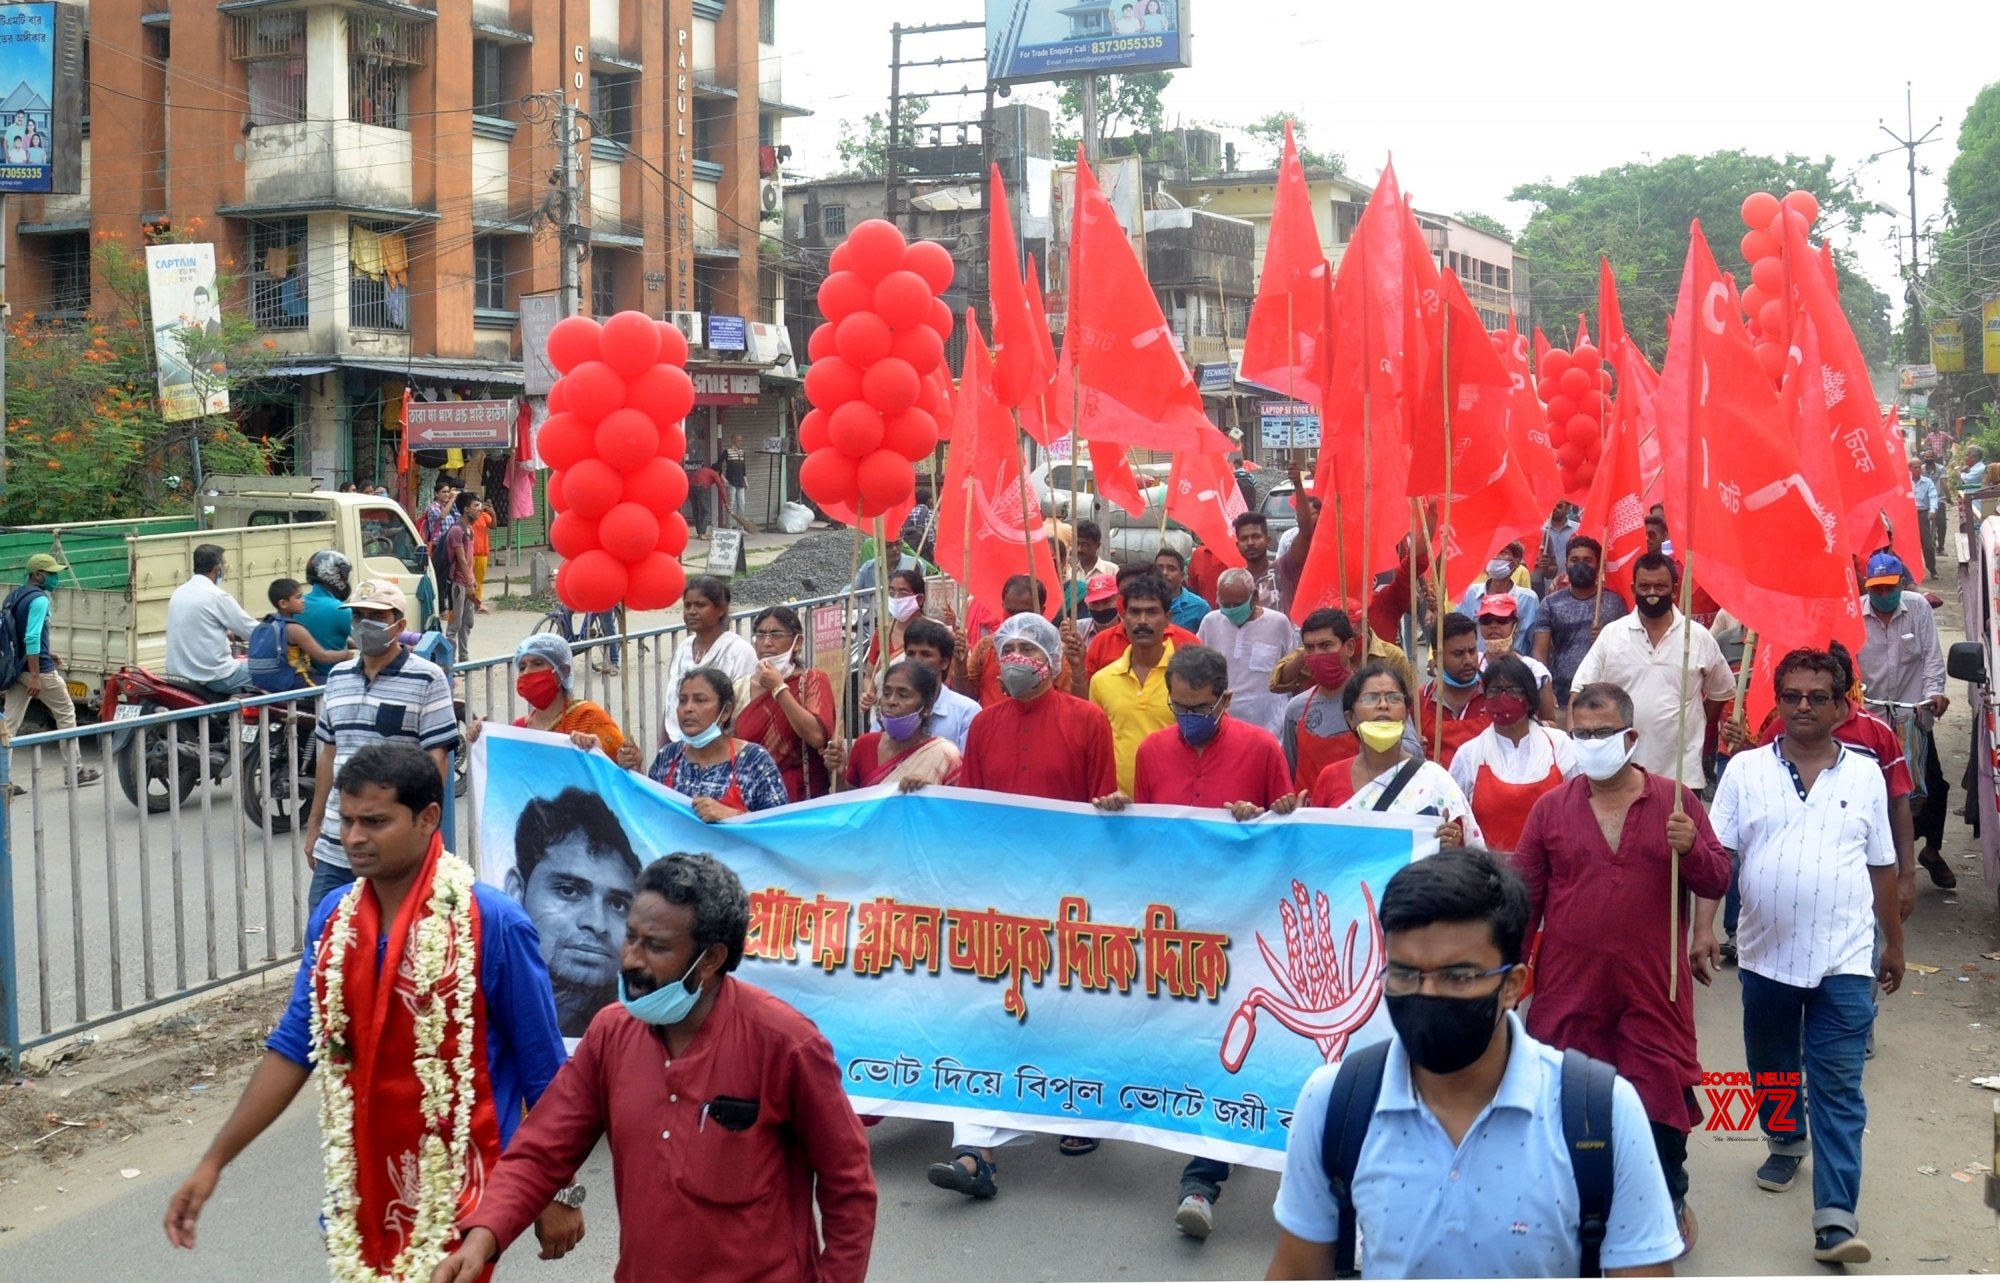 Kolkata: Sanjukta Morcha activists took part in a rally ahead of the 4th phase of the State Assembly election in Kolkata. #Gallery